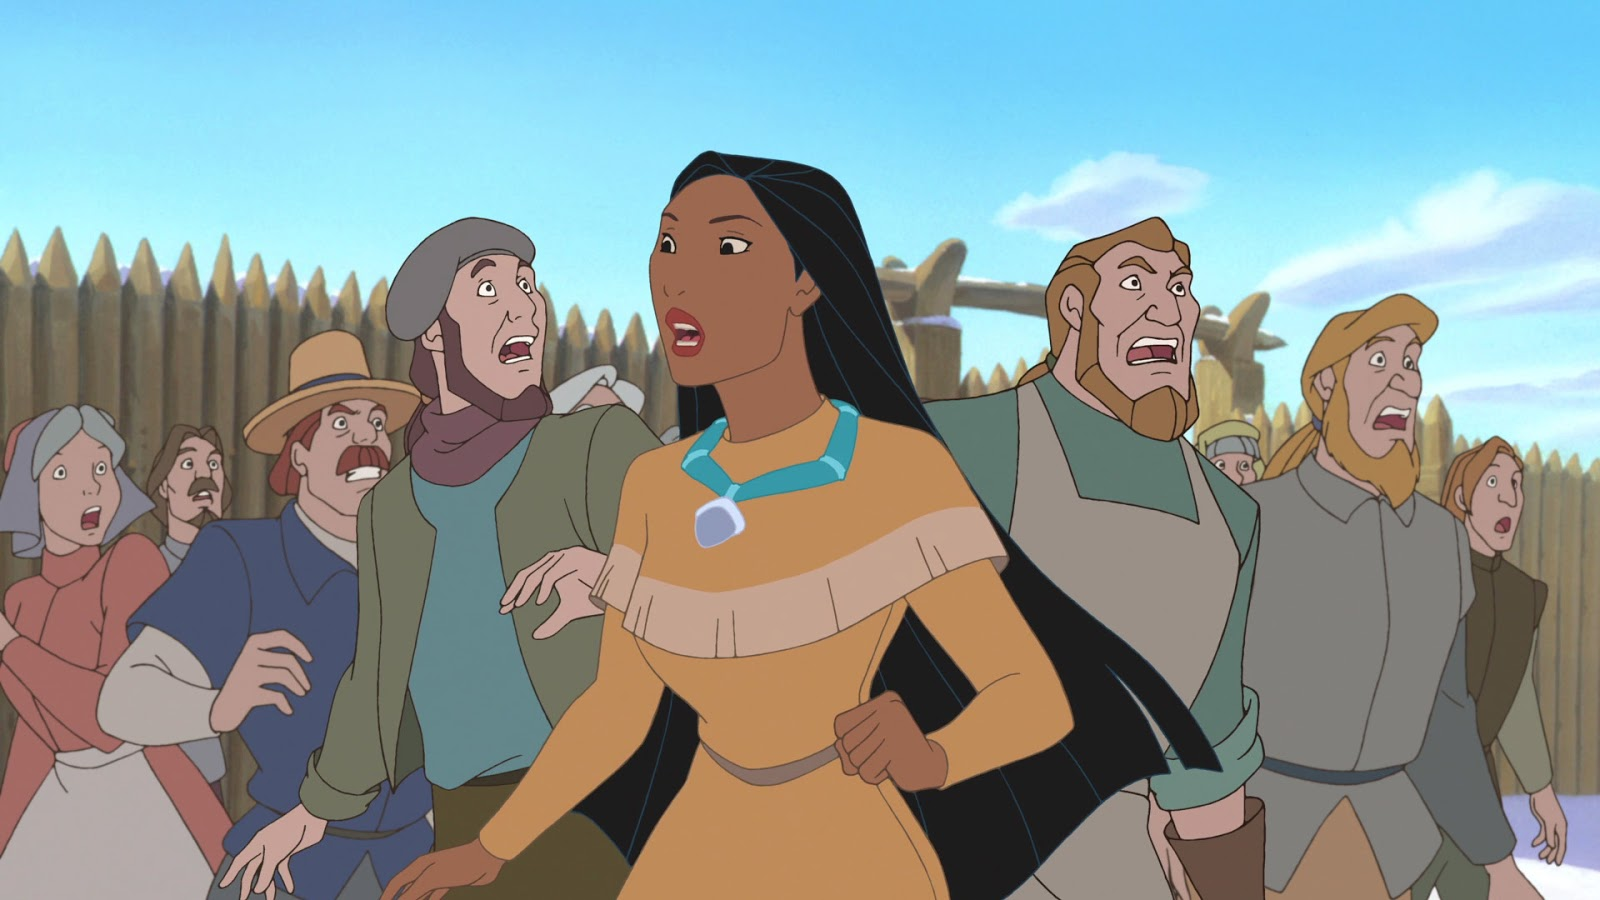 pocahontas analysis Pocahontas analysis i believe that the disney movie pocahontas is very inaccurate because of all the details that don't match up with the actual story parts involving pocahontas' age, the relationship between john smith and pocahontas, john smith's capture and the method of communication between pocahontas and john smith are.